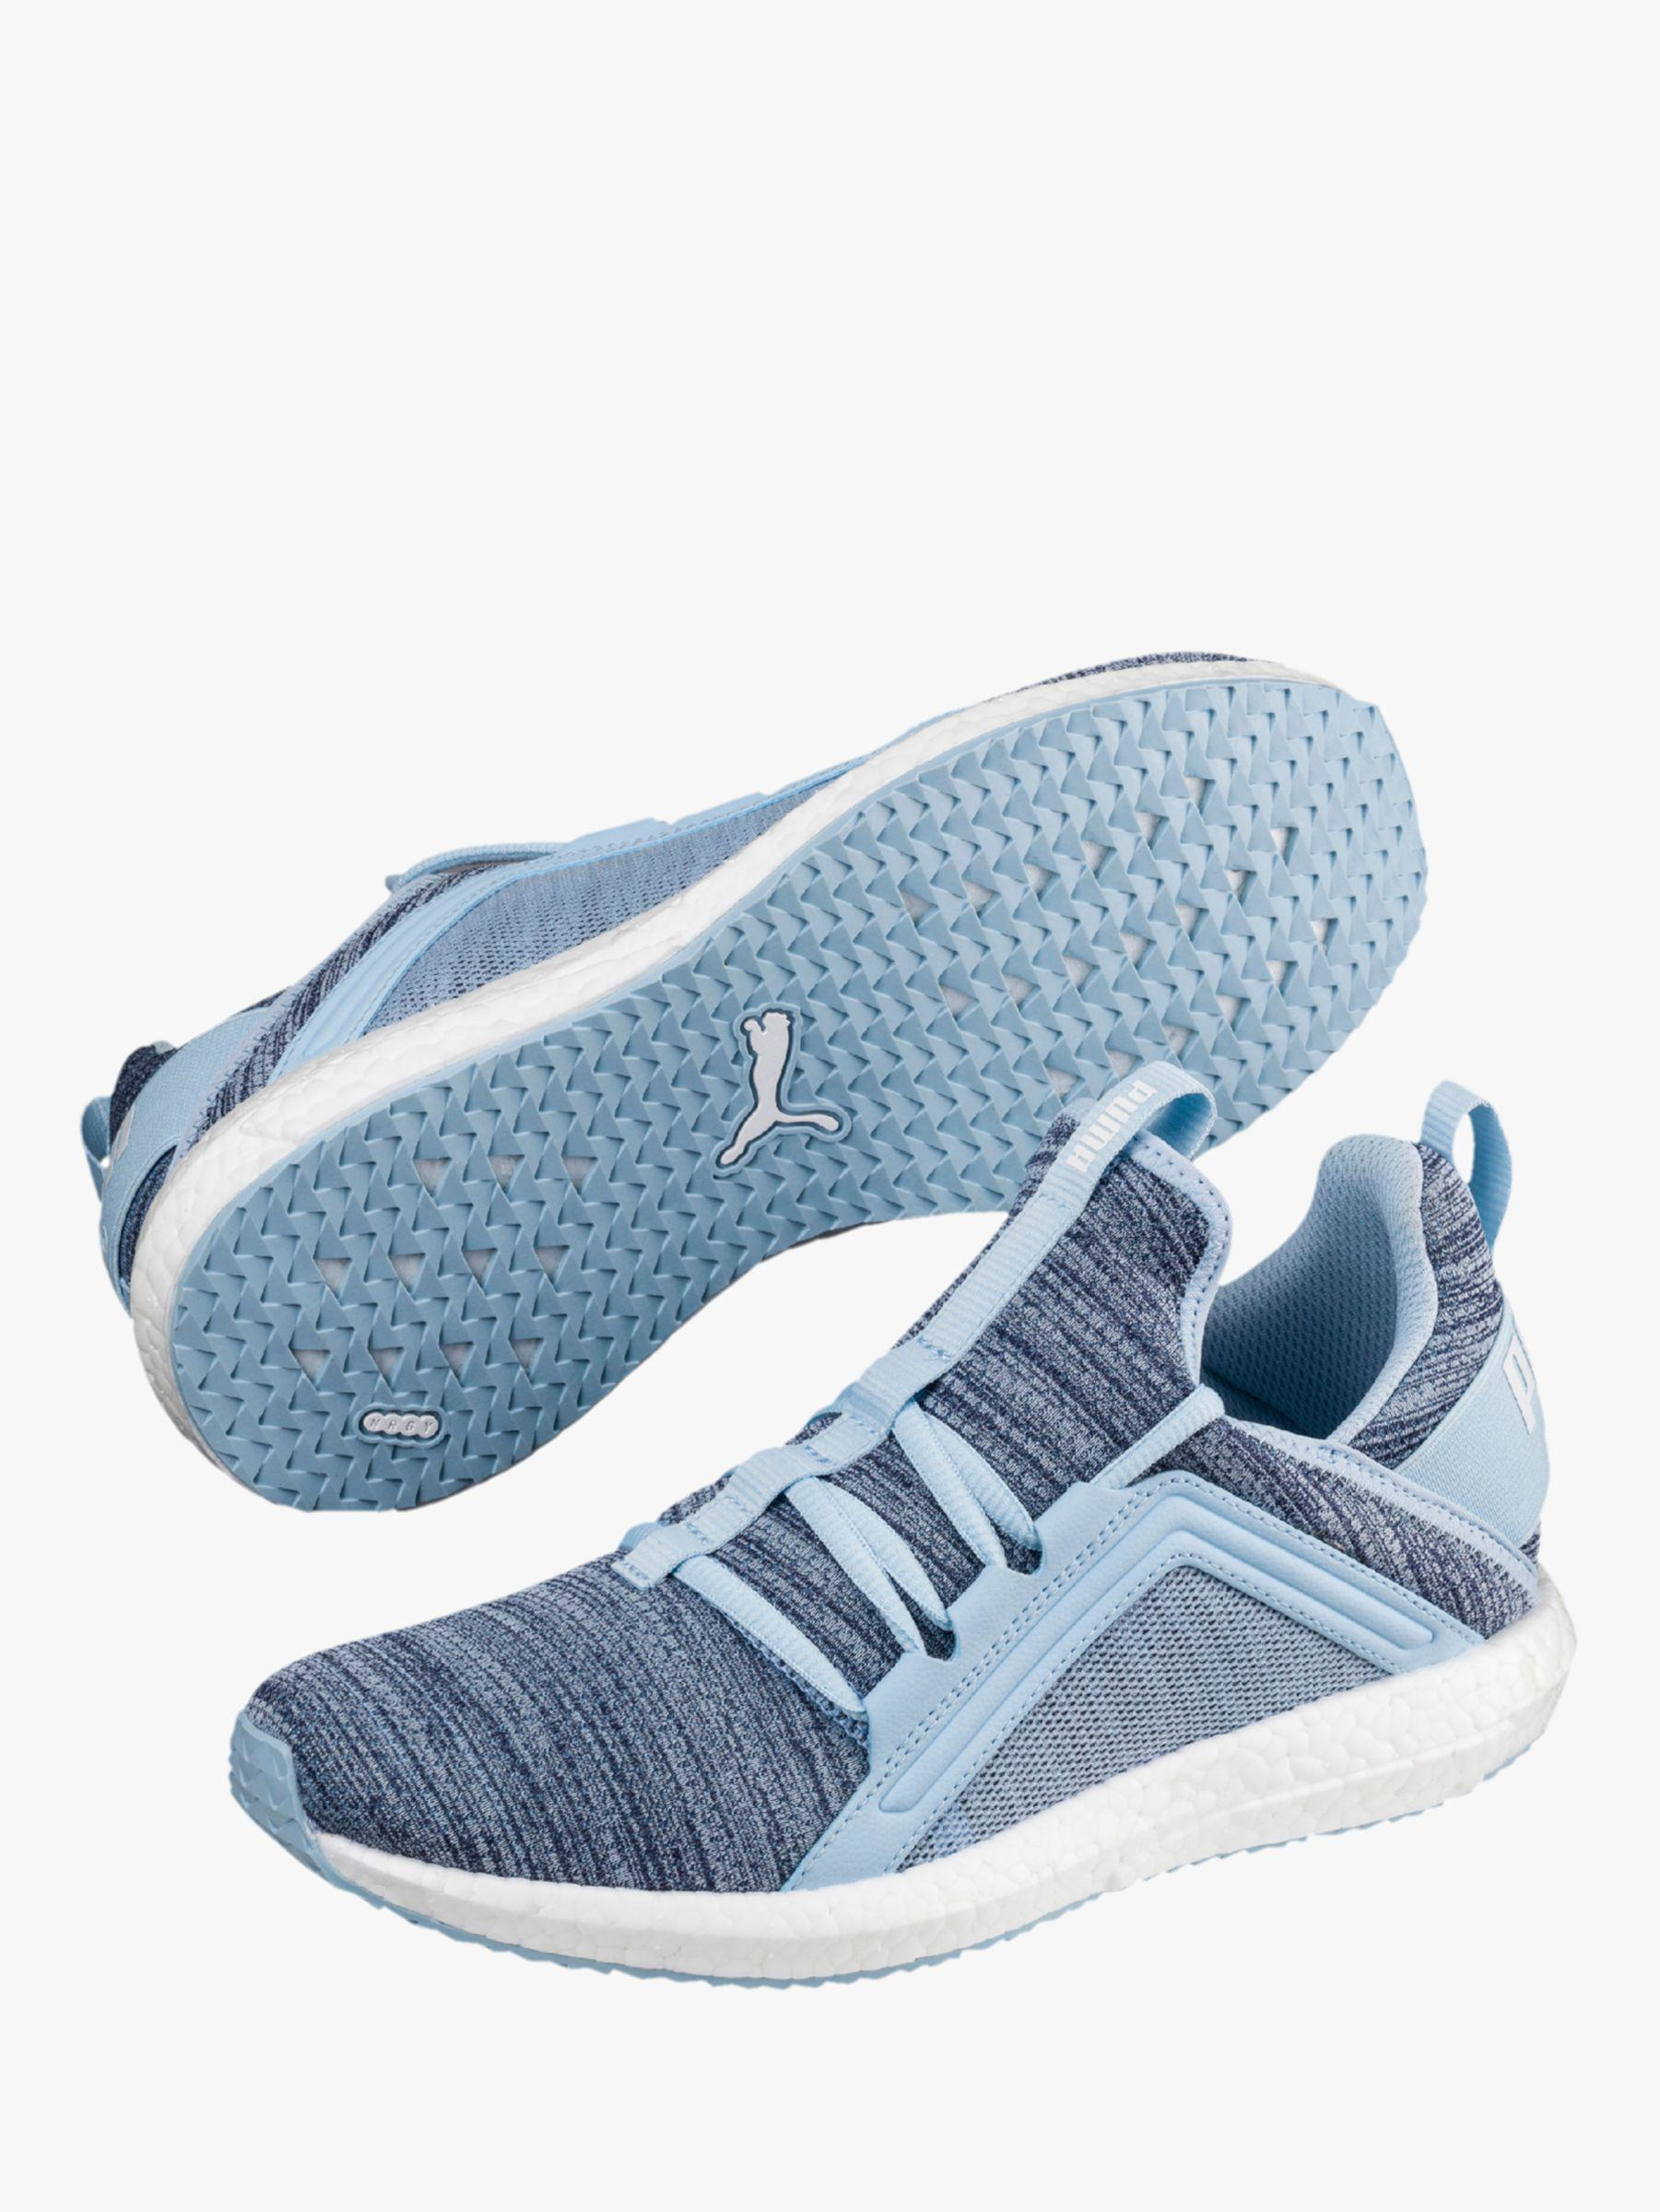 PUMA Ignite Flash Evoknit Women s Running Shoes in Blue - Lyst 51e16df8b